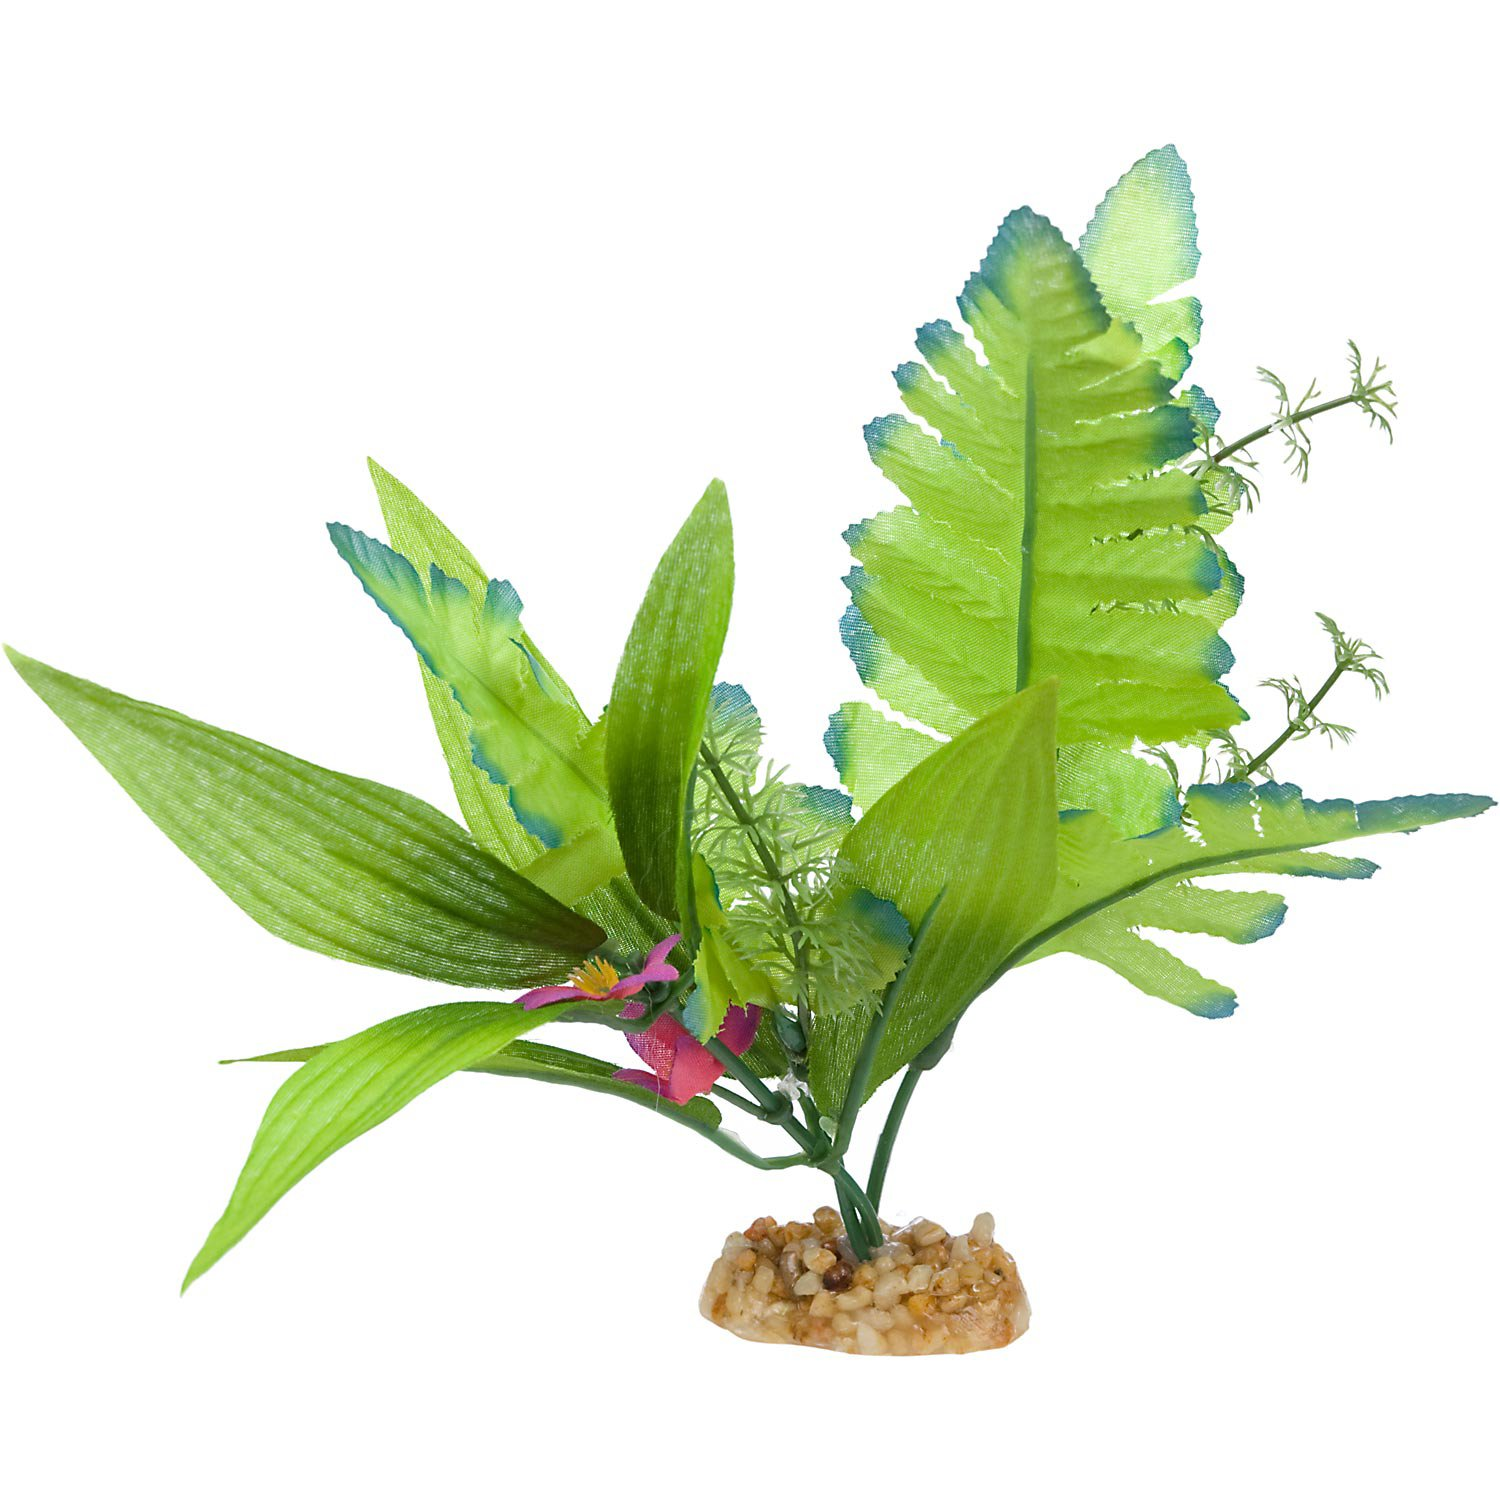 Imagitarium Leafy Green Silk Aquarium Plant Petco Planted Aquarium Silk Aquarium Plants Plants